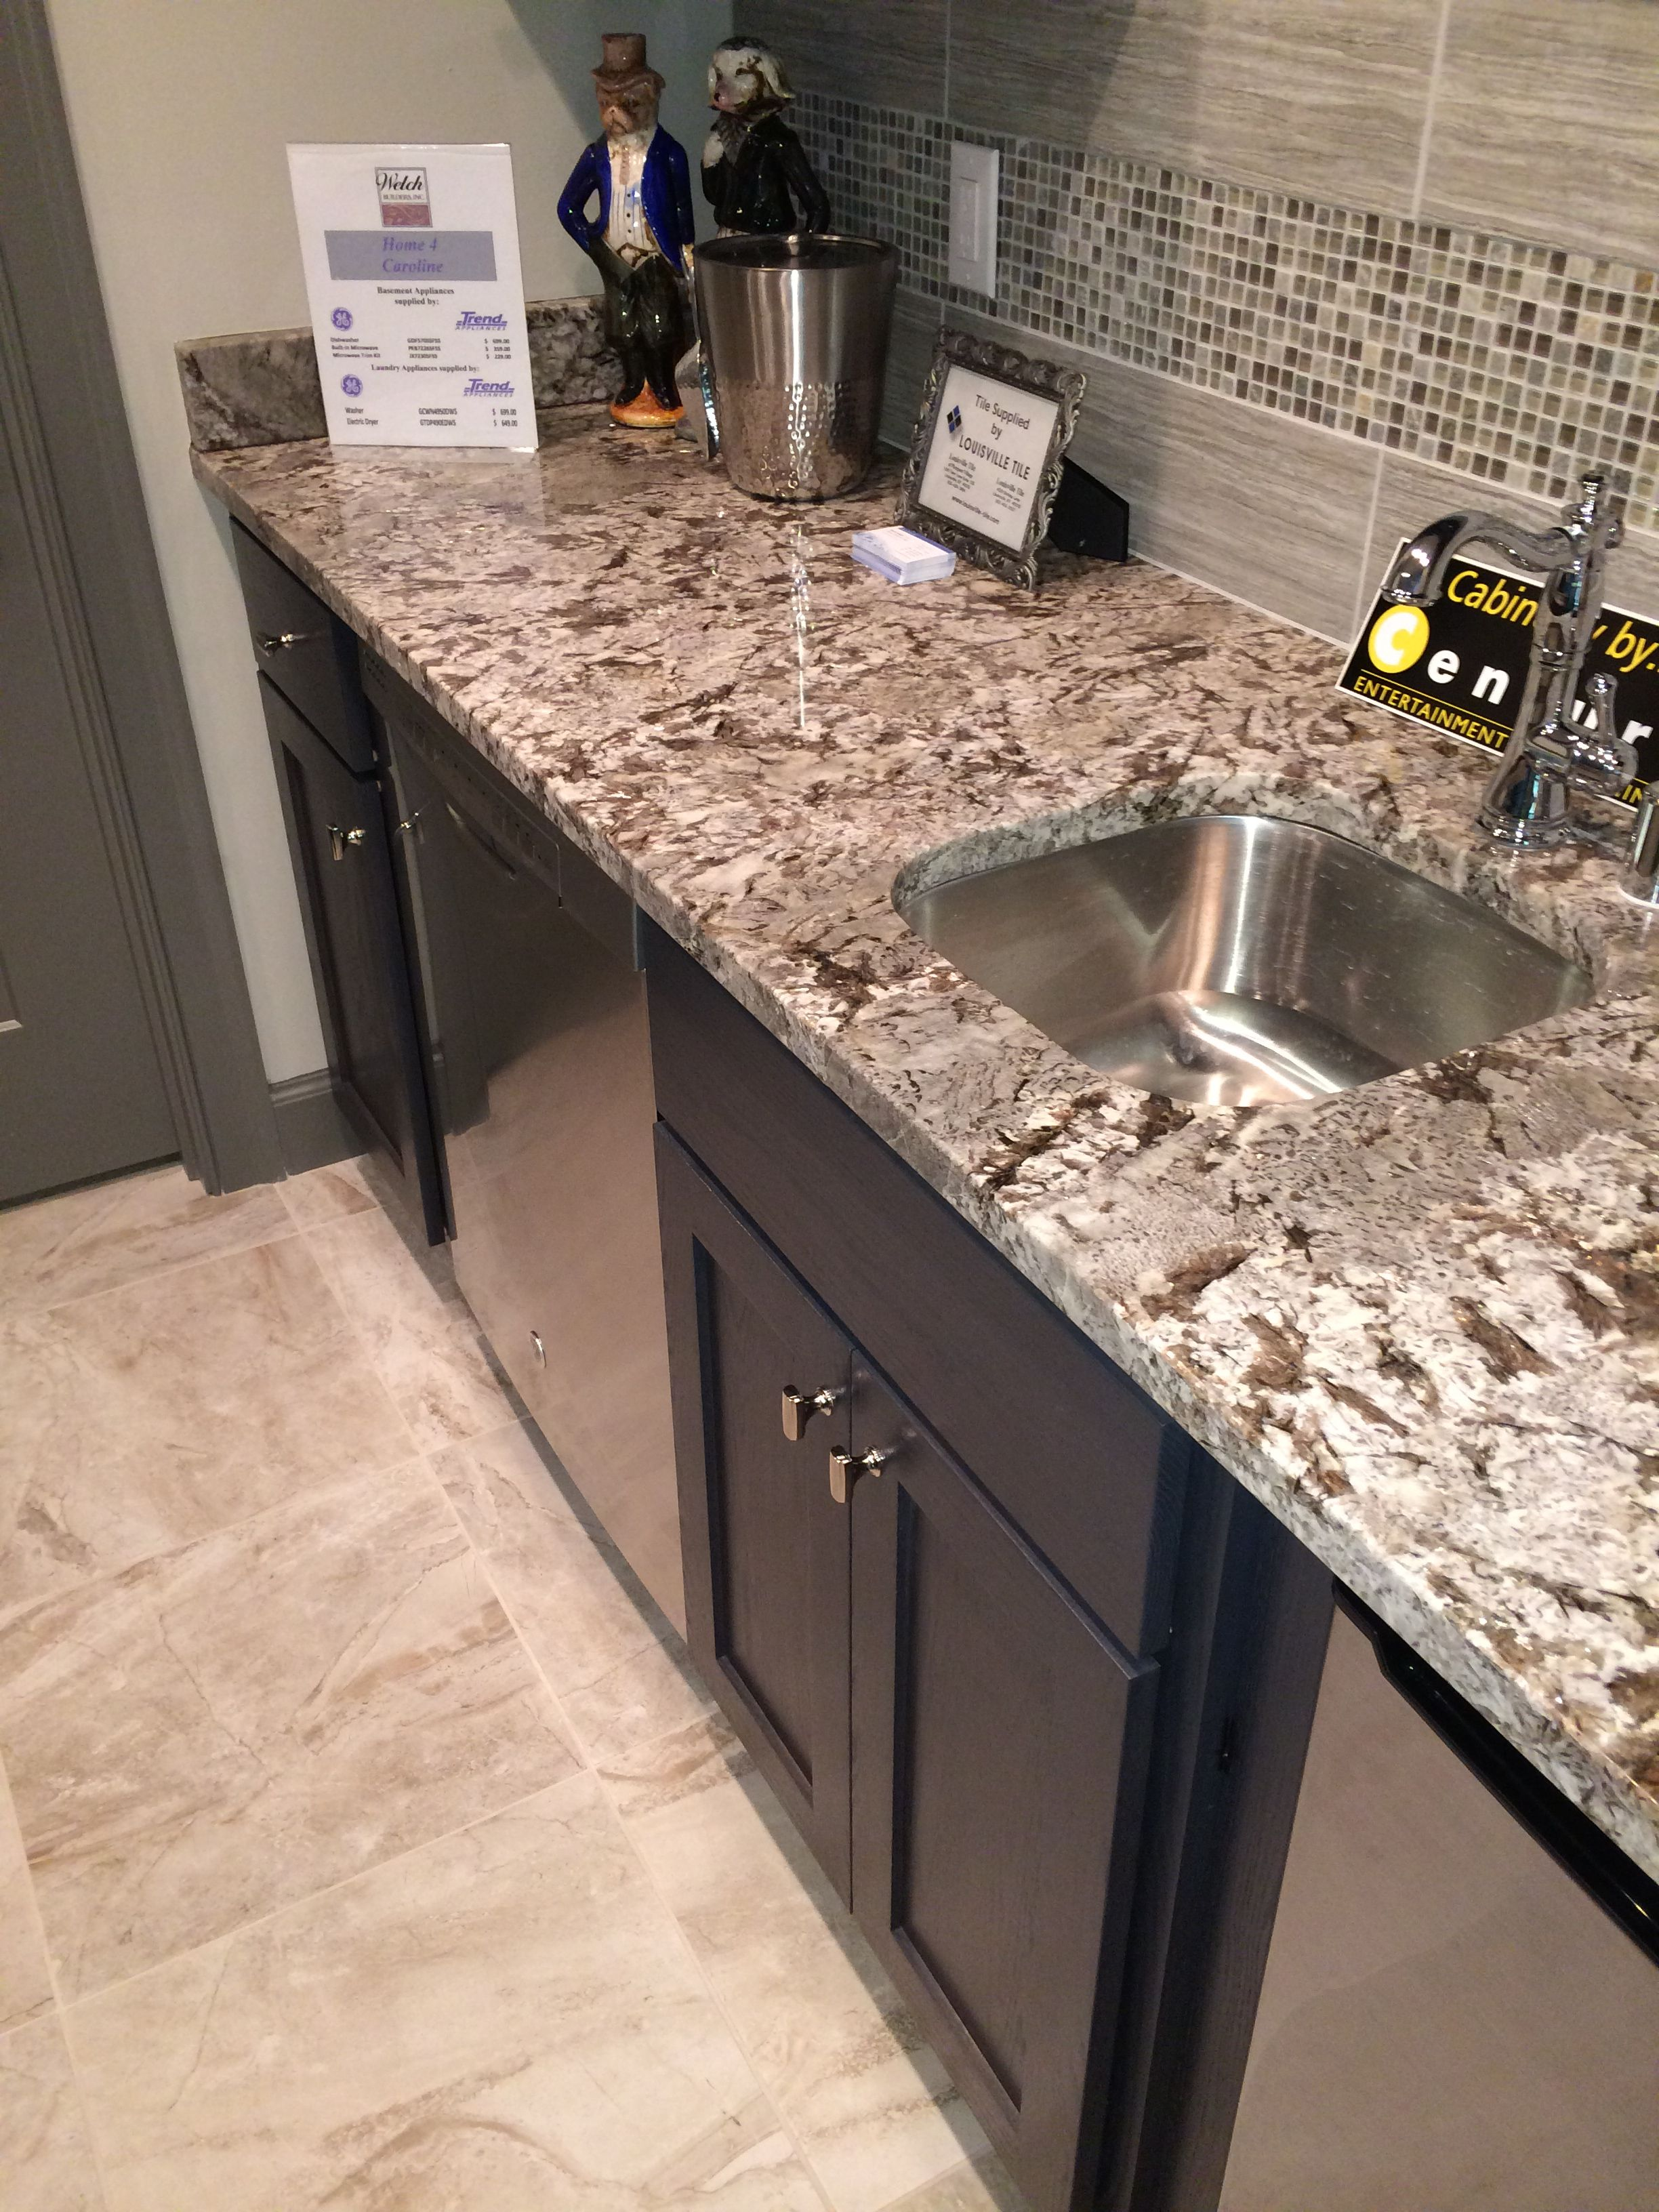 Bianco Antico Polished Granite Counter With Dark Espresso Cabinets Visit Globalgranite For Your Natural Stone Needs